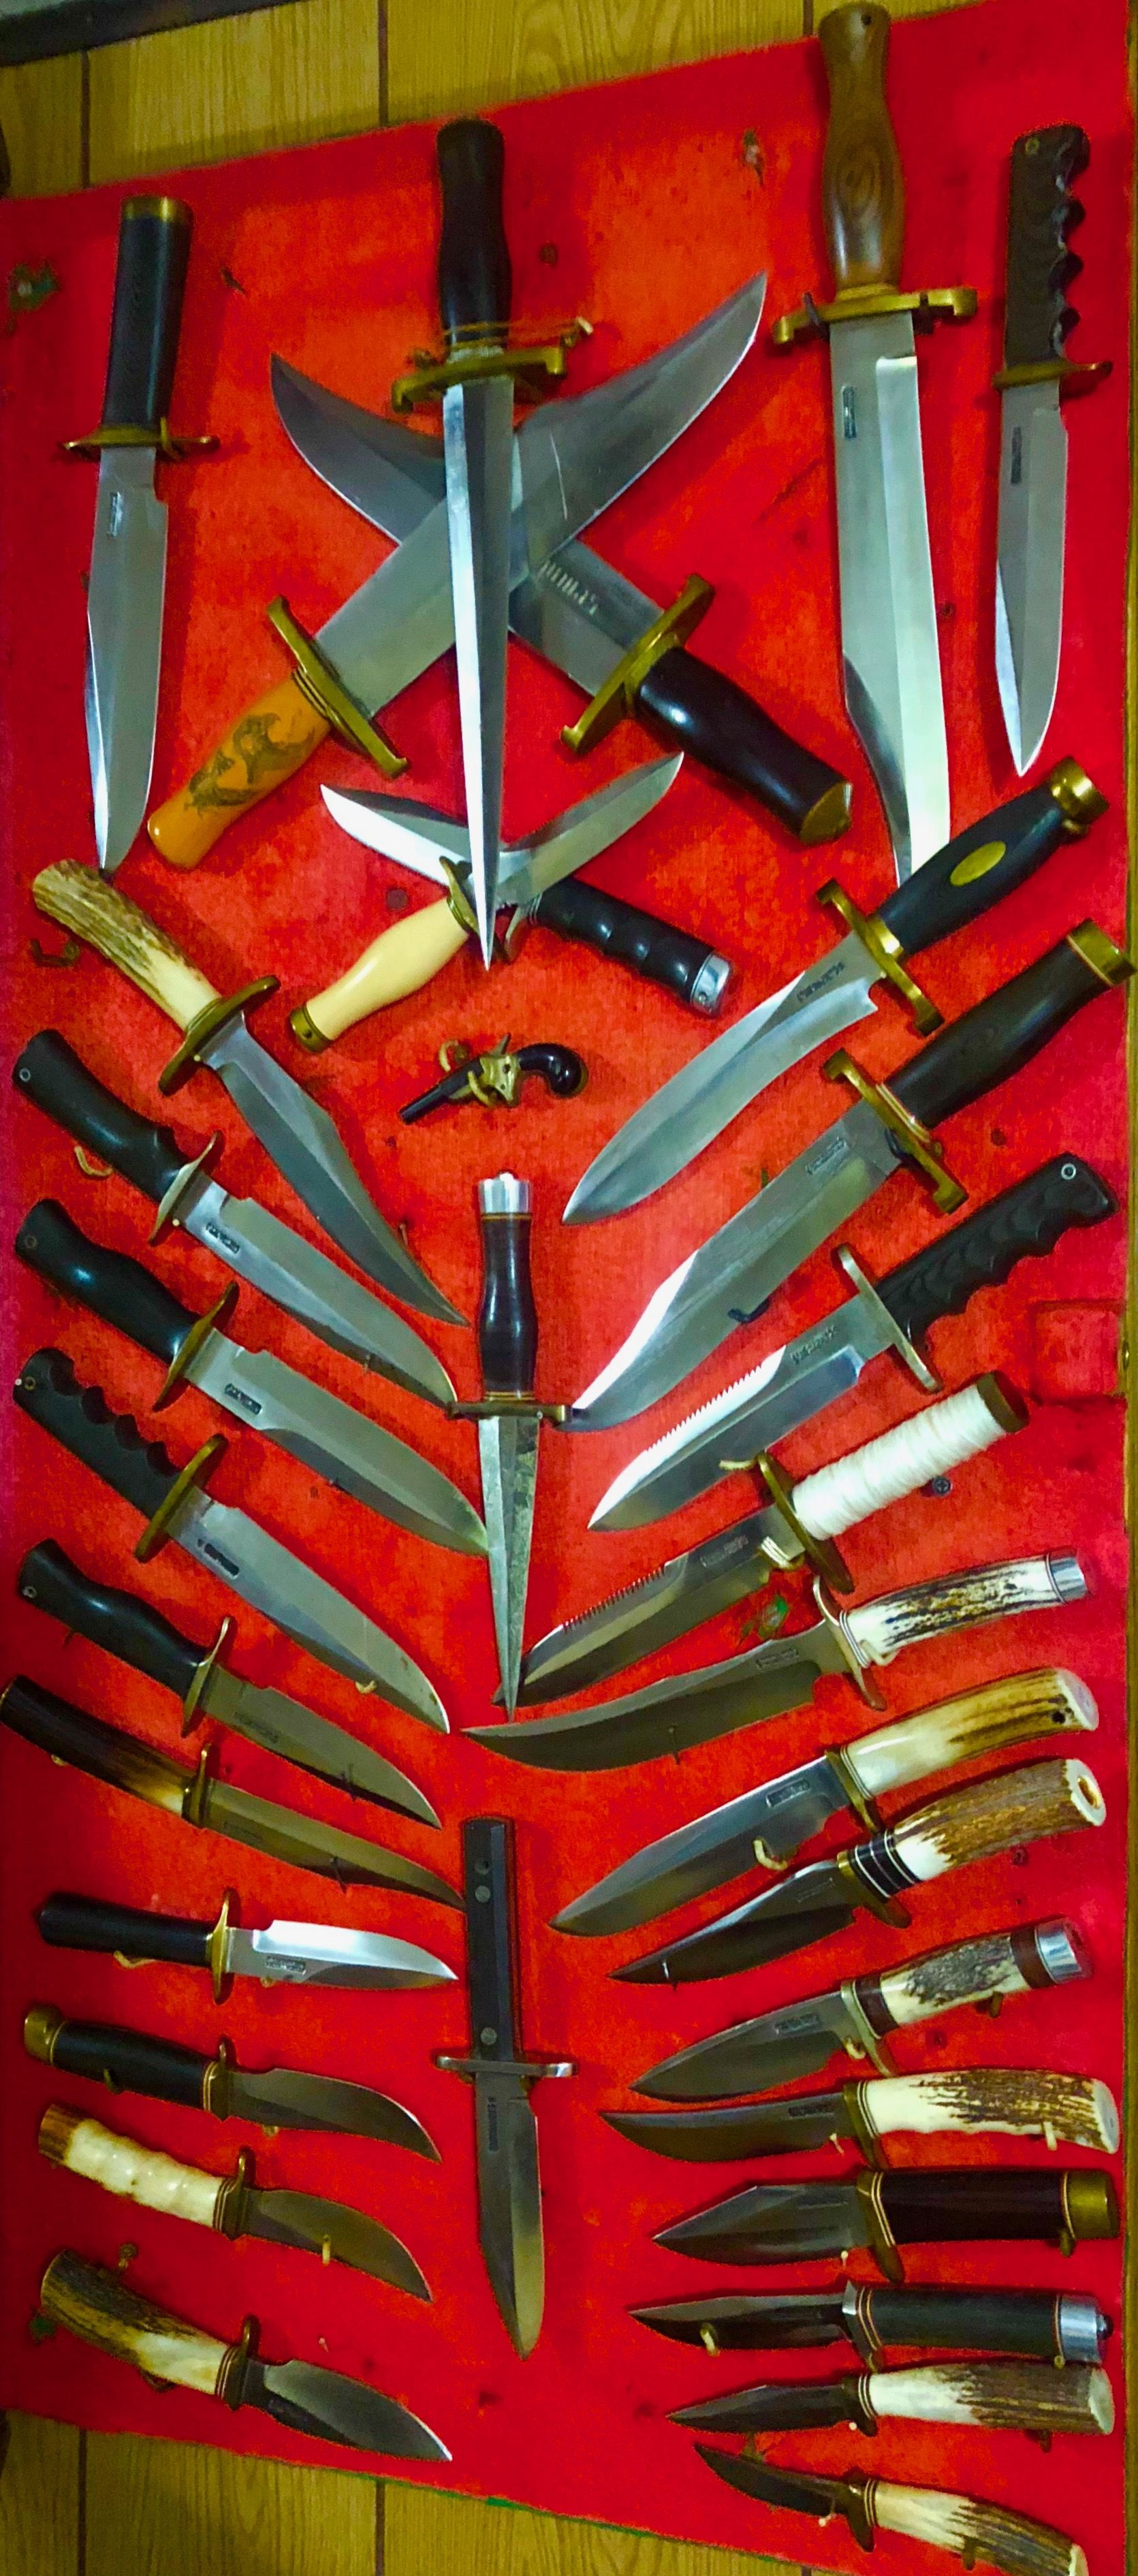 Pin By Ernest Hays On Display Cases Pinterest Messer And Kalter